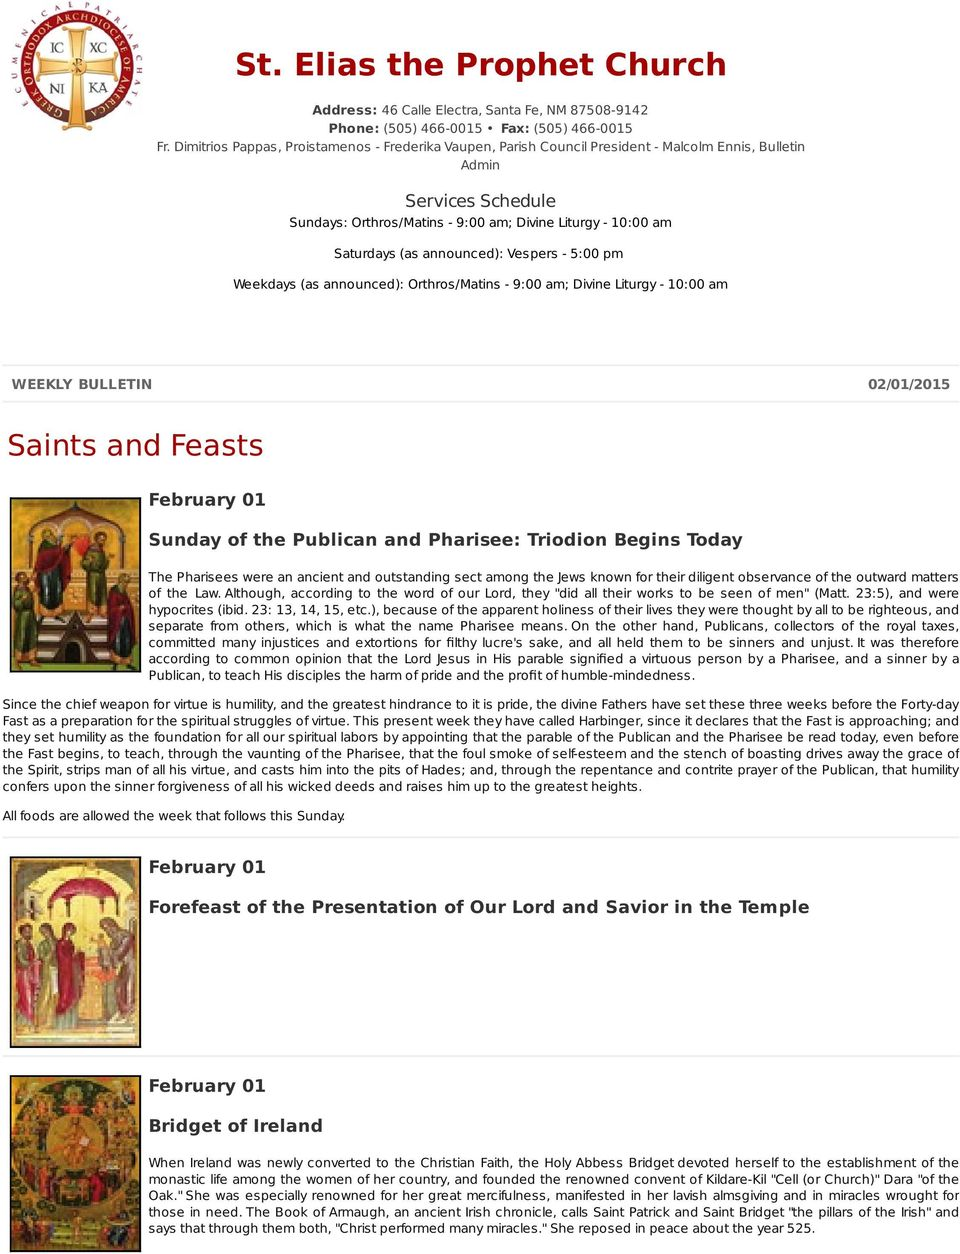 (as announced): Vespers - 5:00 pm Weekdays (as announced): Orthros/Matins - 9:00 am; Divine Liturgy - 10:00 am WEEKLY BULLETIN 02/01/2015 Saints and Feasts Sunday of the Publican and Pharisee: